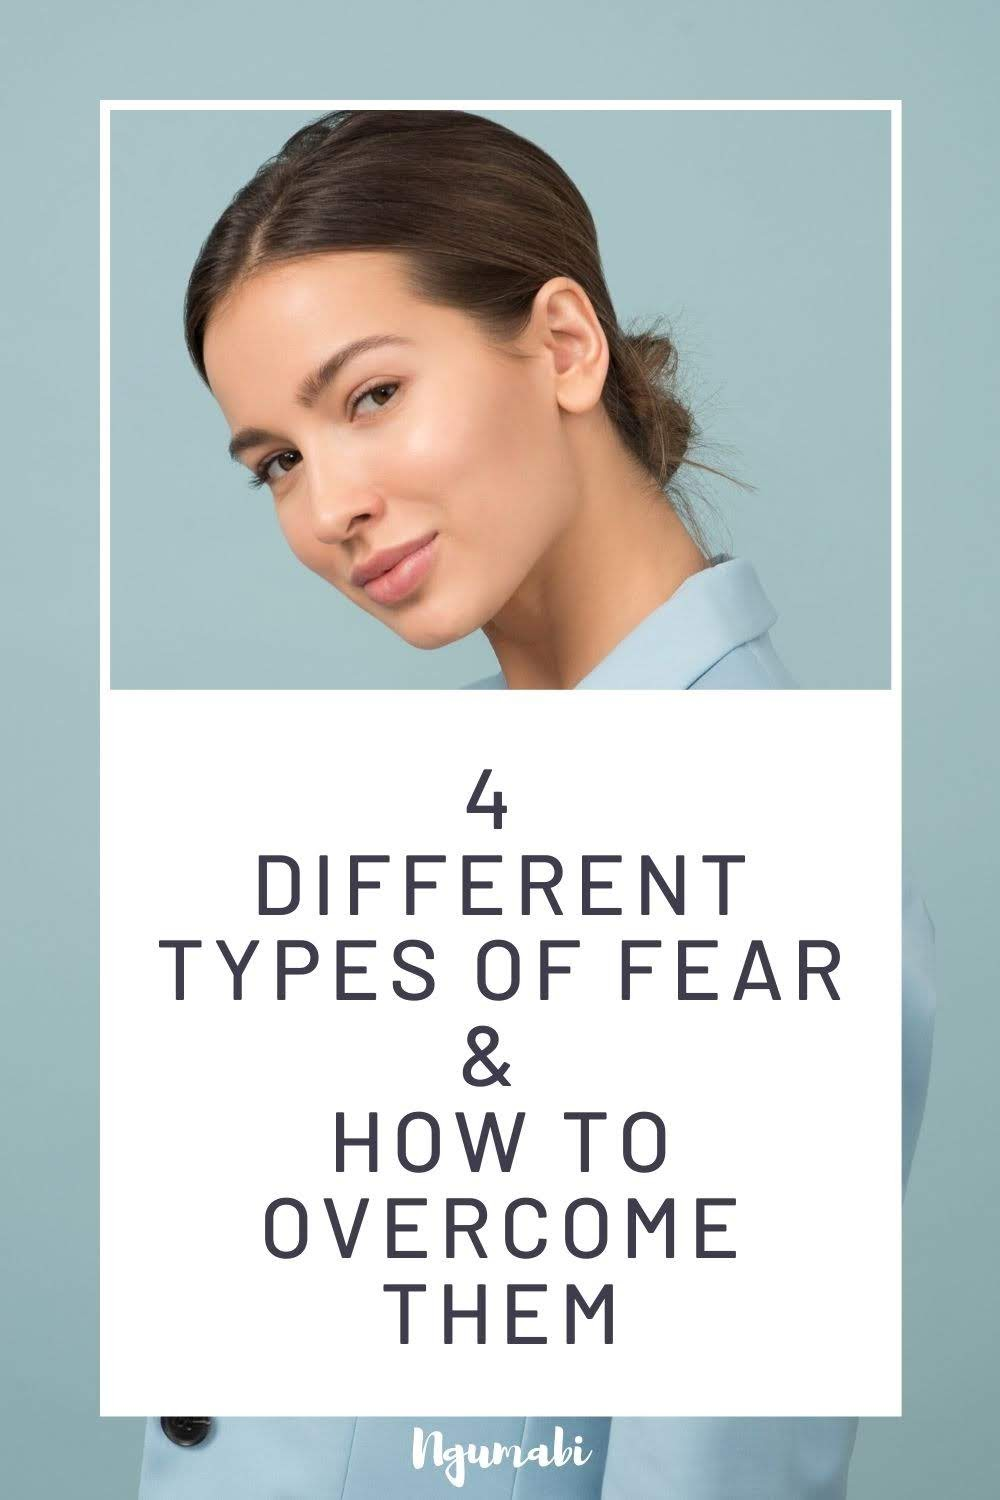 4 Different Types Of Fear & How To Overcome Them By Yourself